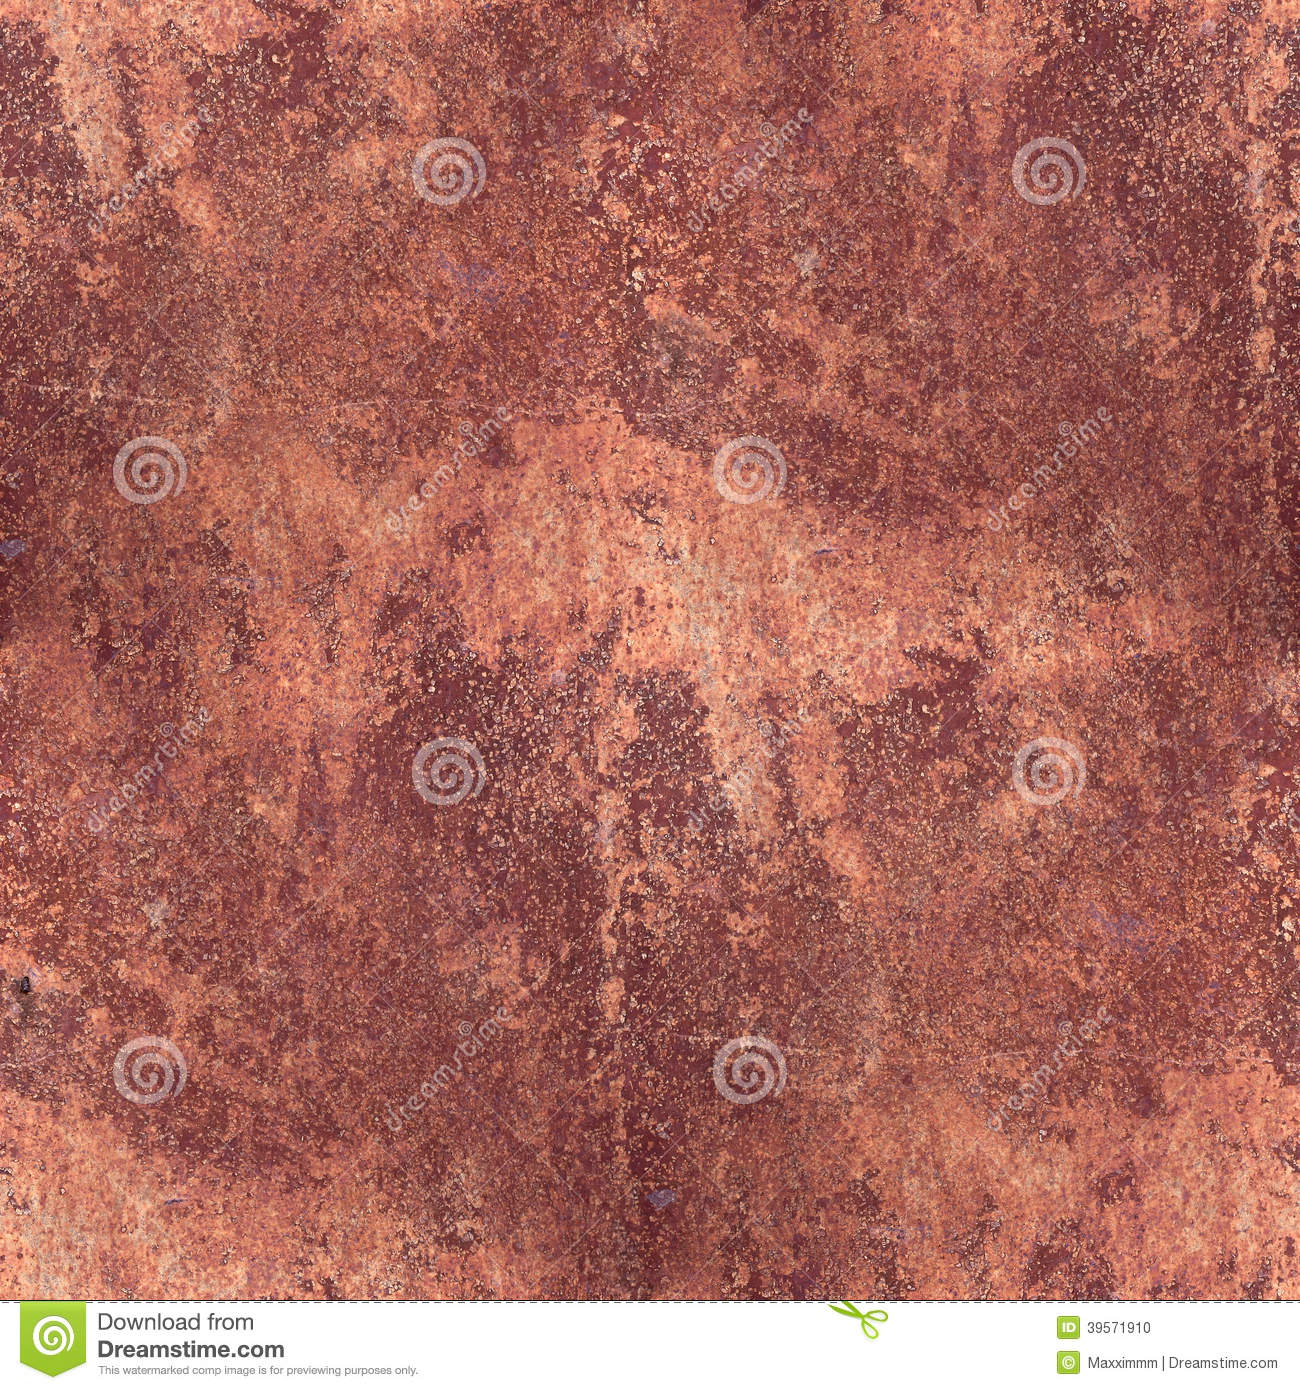 grunge rusty background texture - photo #25